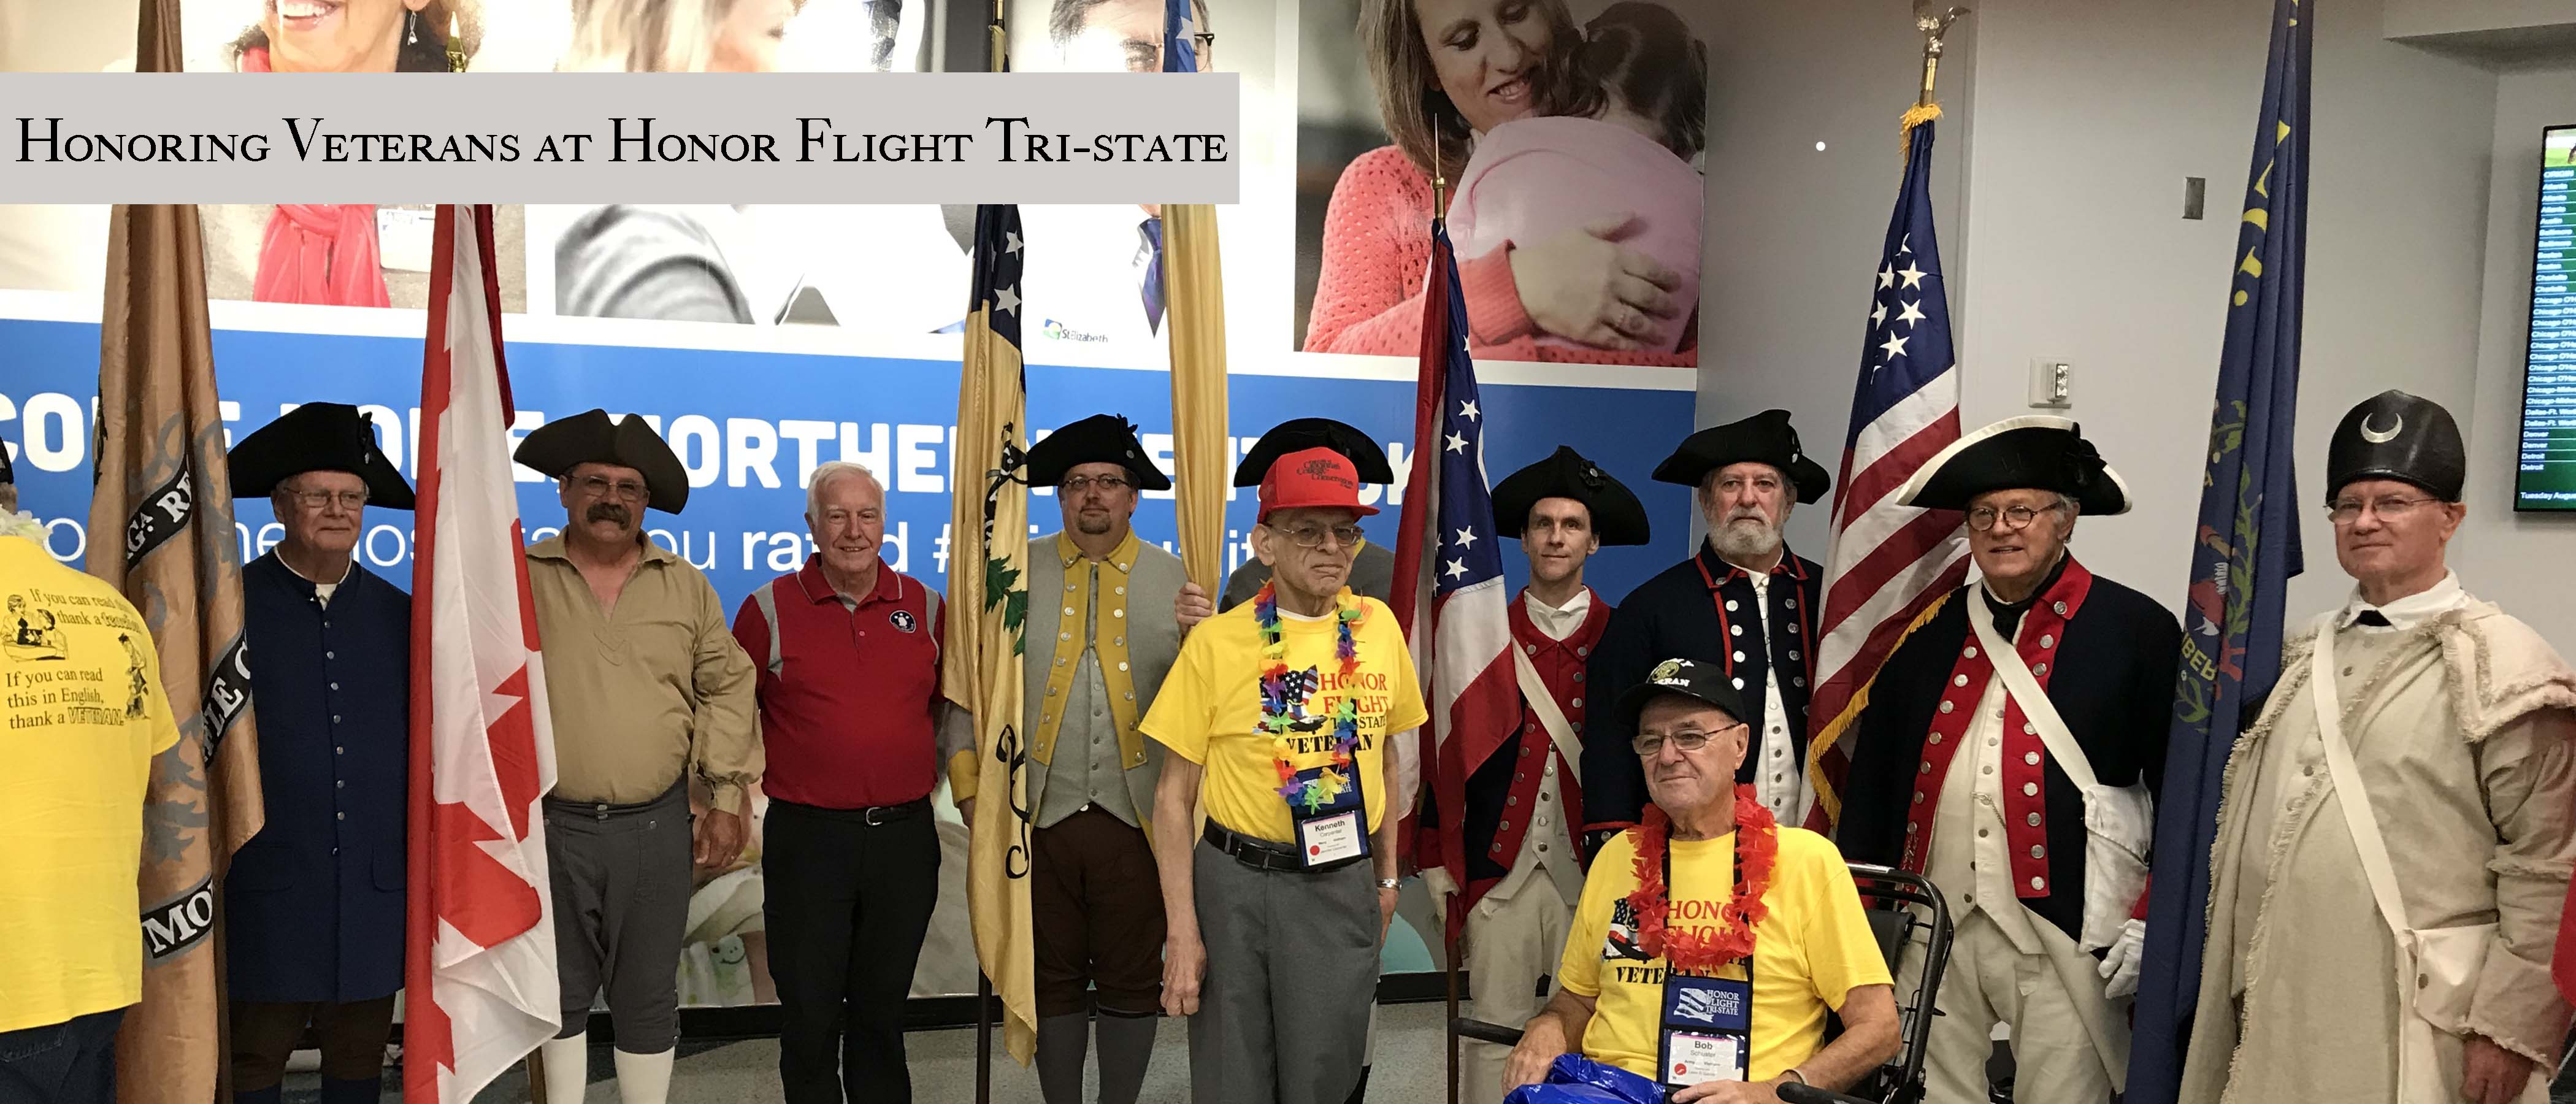 Honor-Flight-Tri-State